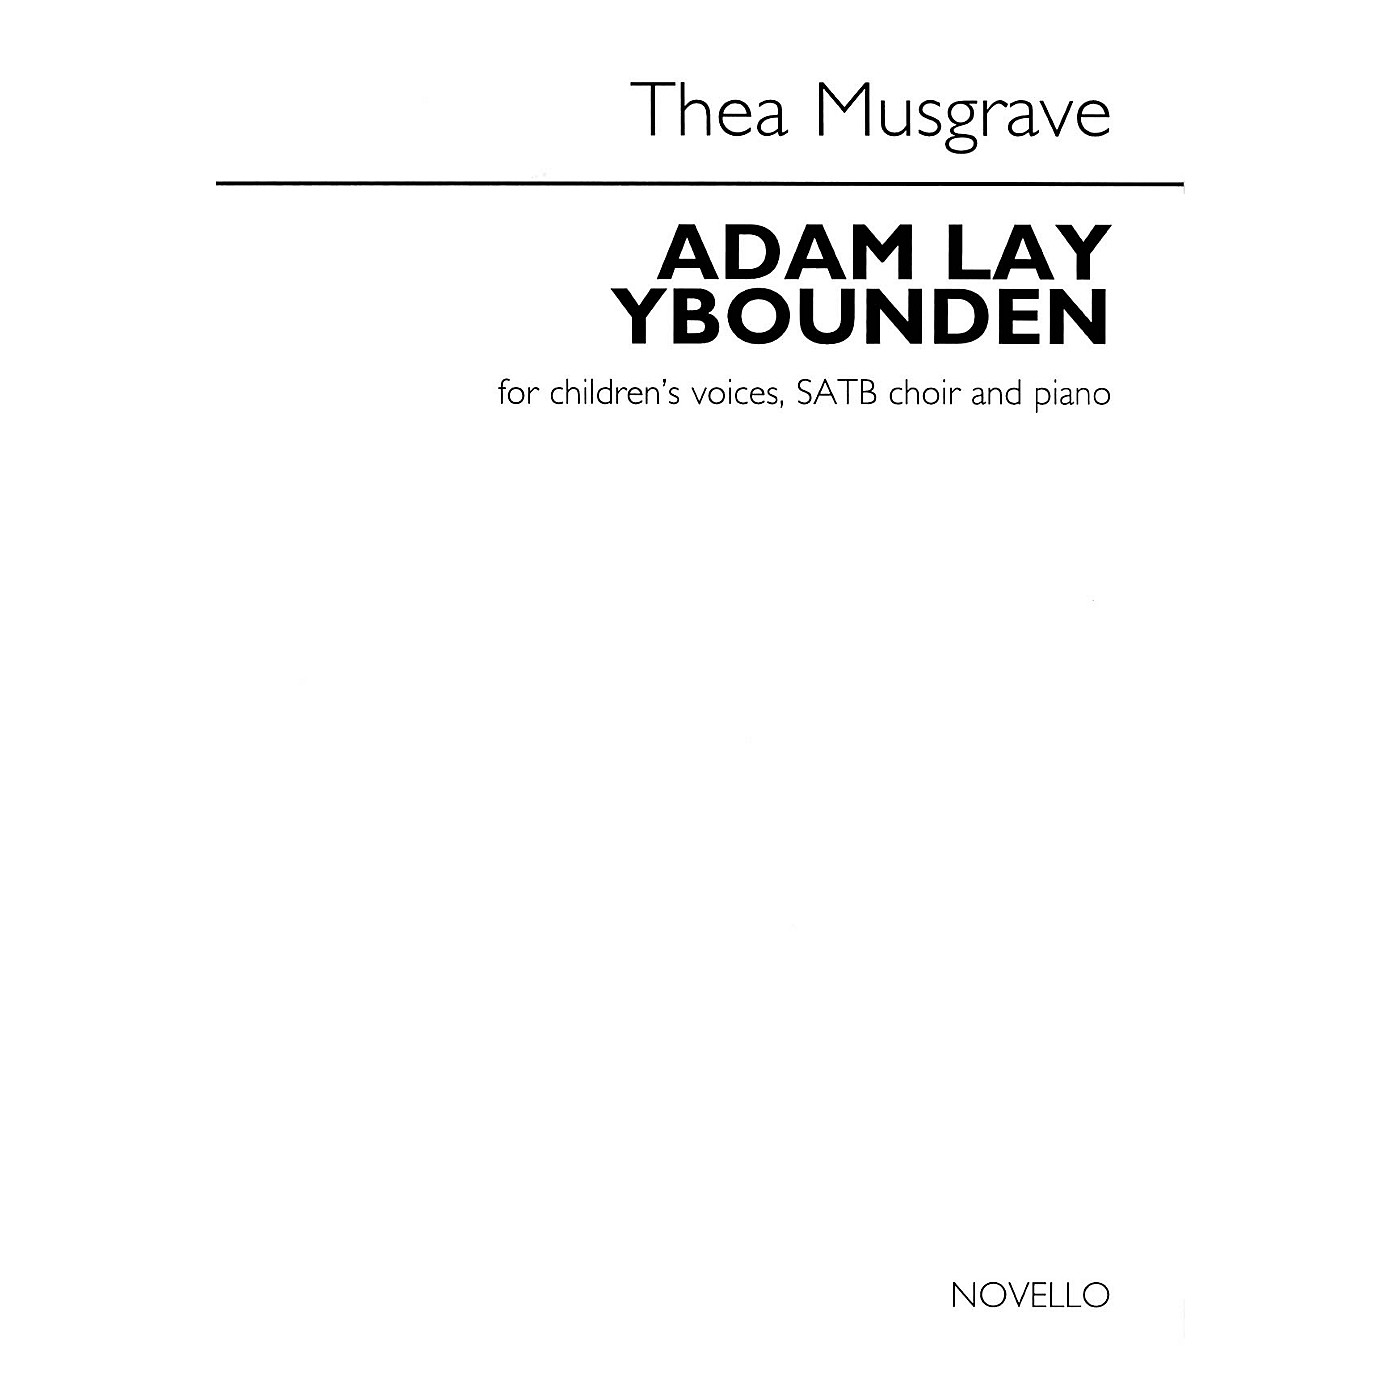 Novello Adam Lay Ybounden (for Children's Voices, SATB Choir and Piano) SATB Composed by Thea Musgrave thumbnail